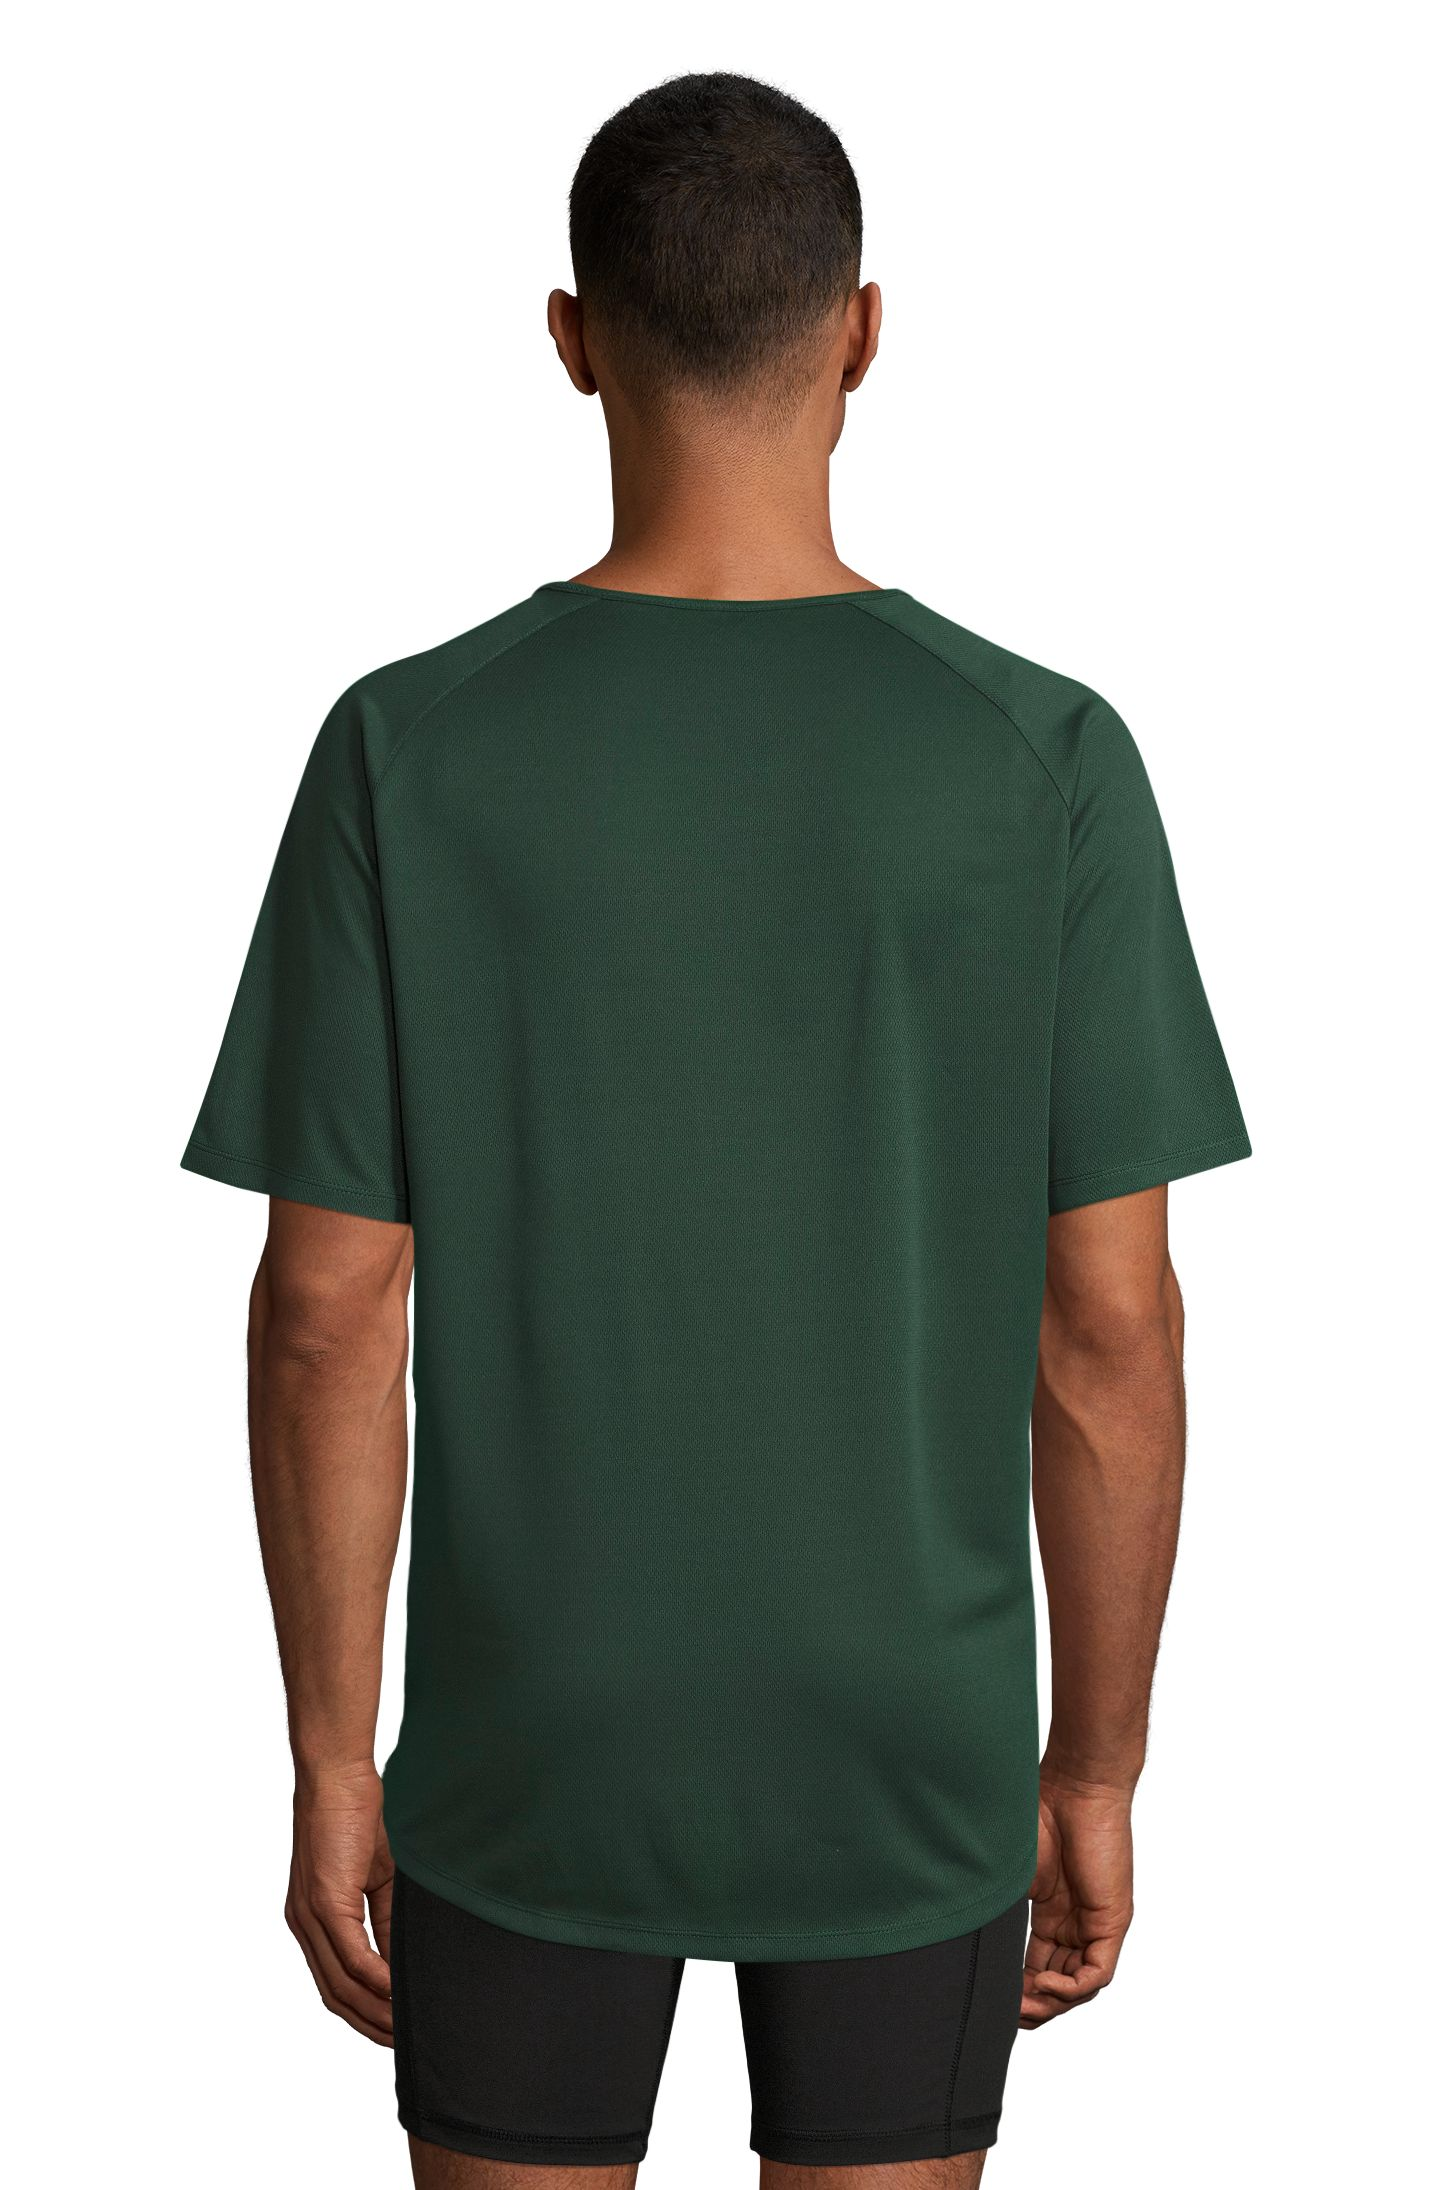 266 - Forest green